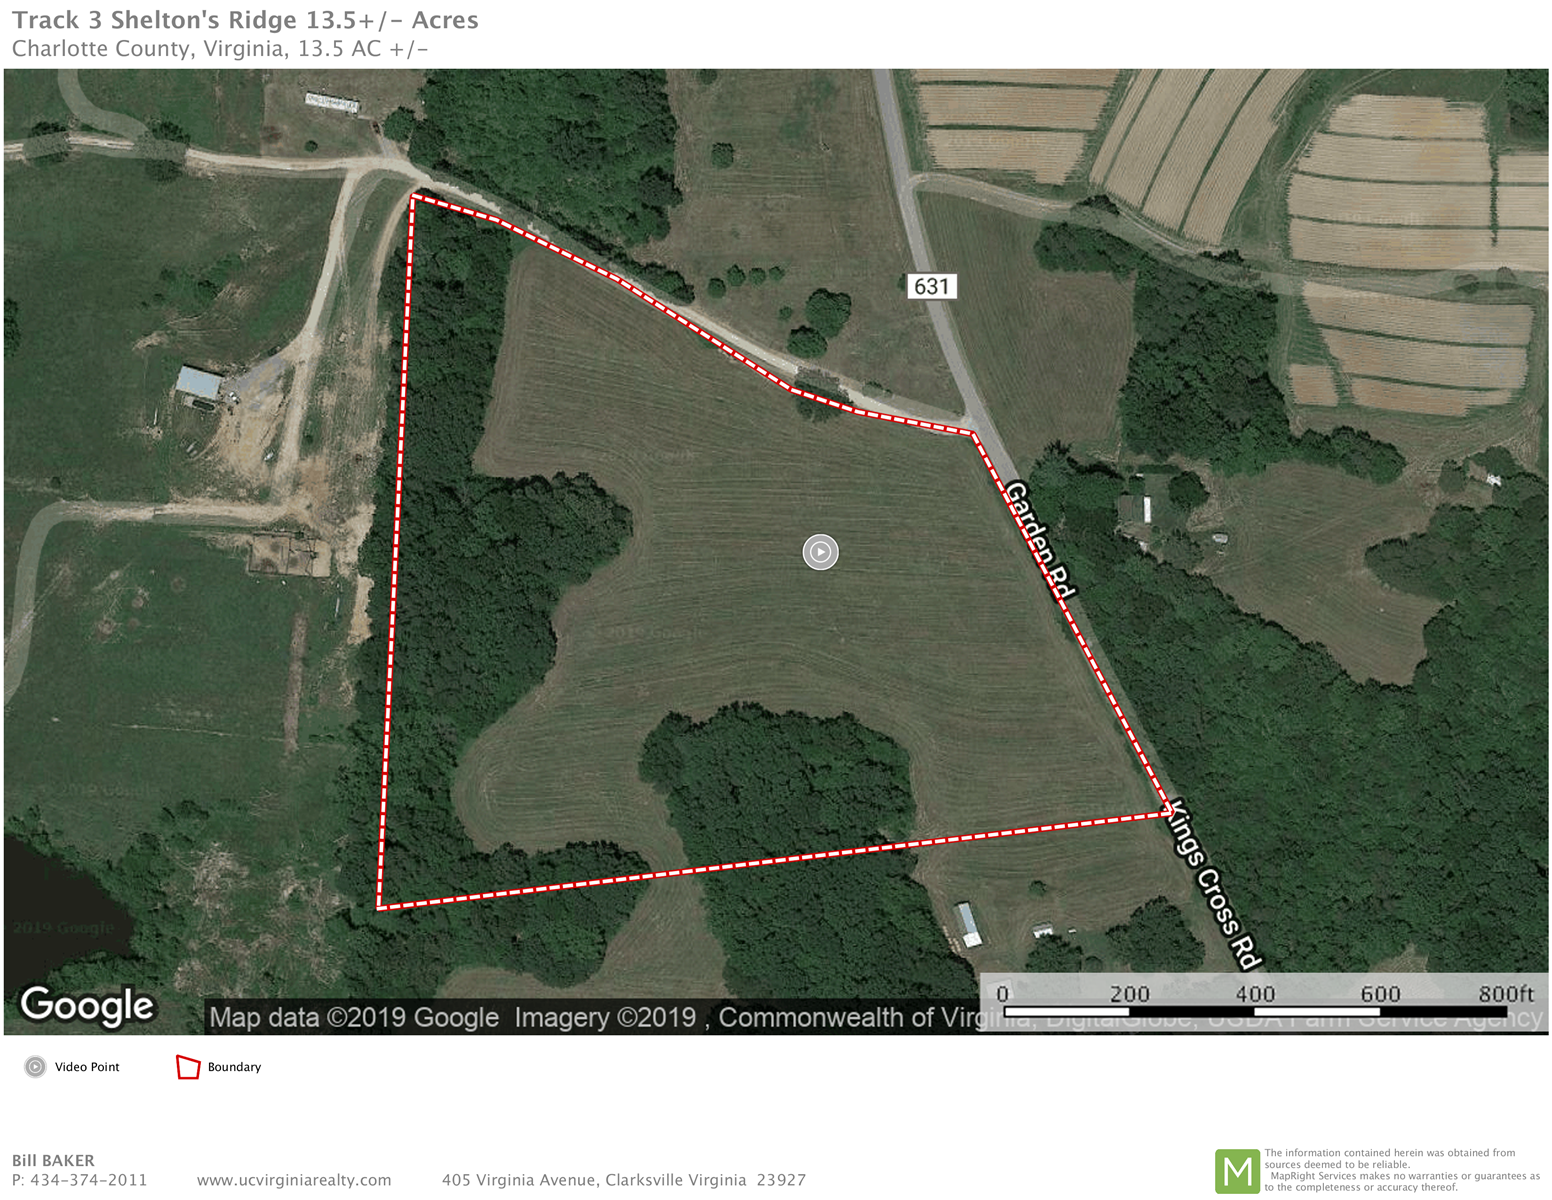 13.5 ACRE LAND TRACT, RED OAK , CHARLOTTE COUNTY VIRGINIA